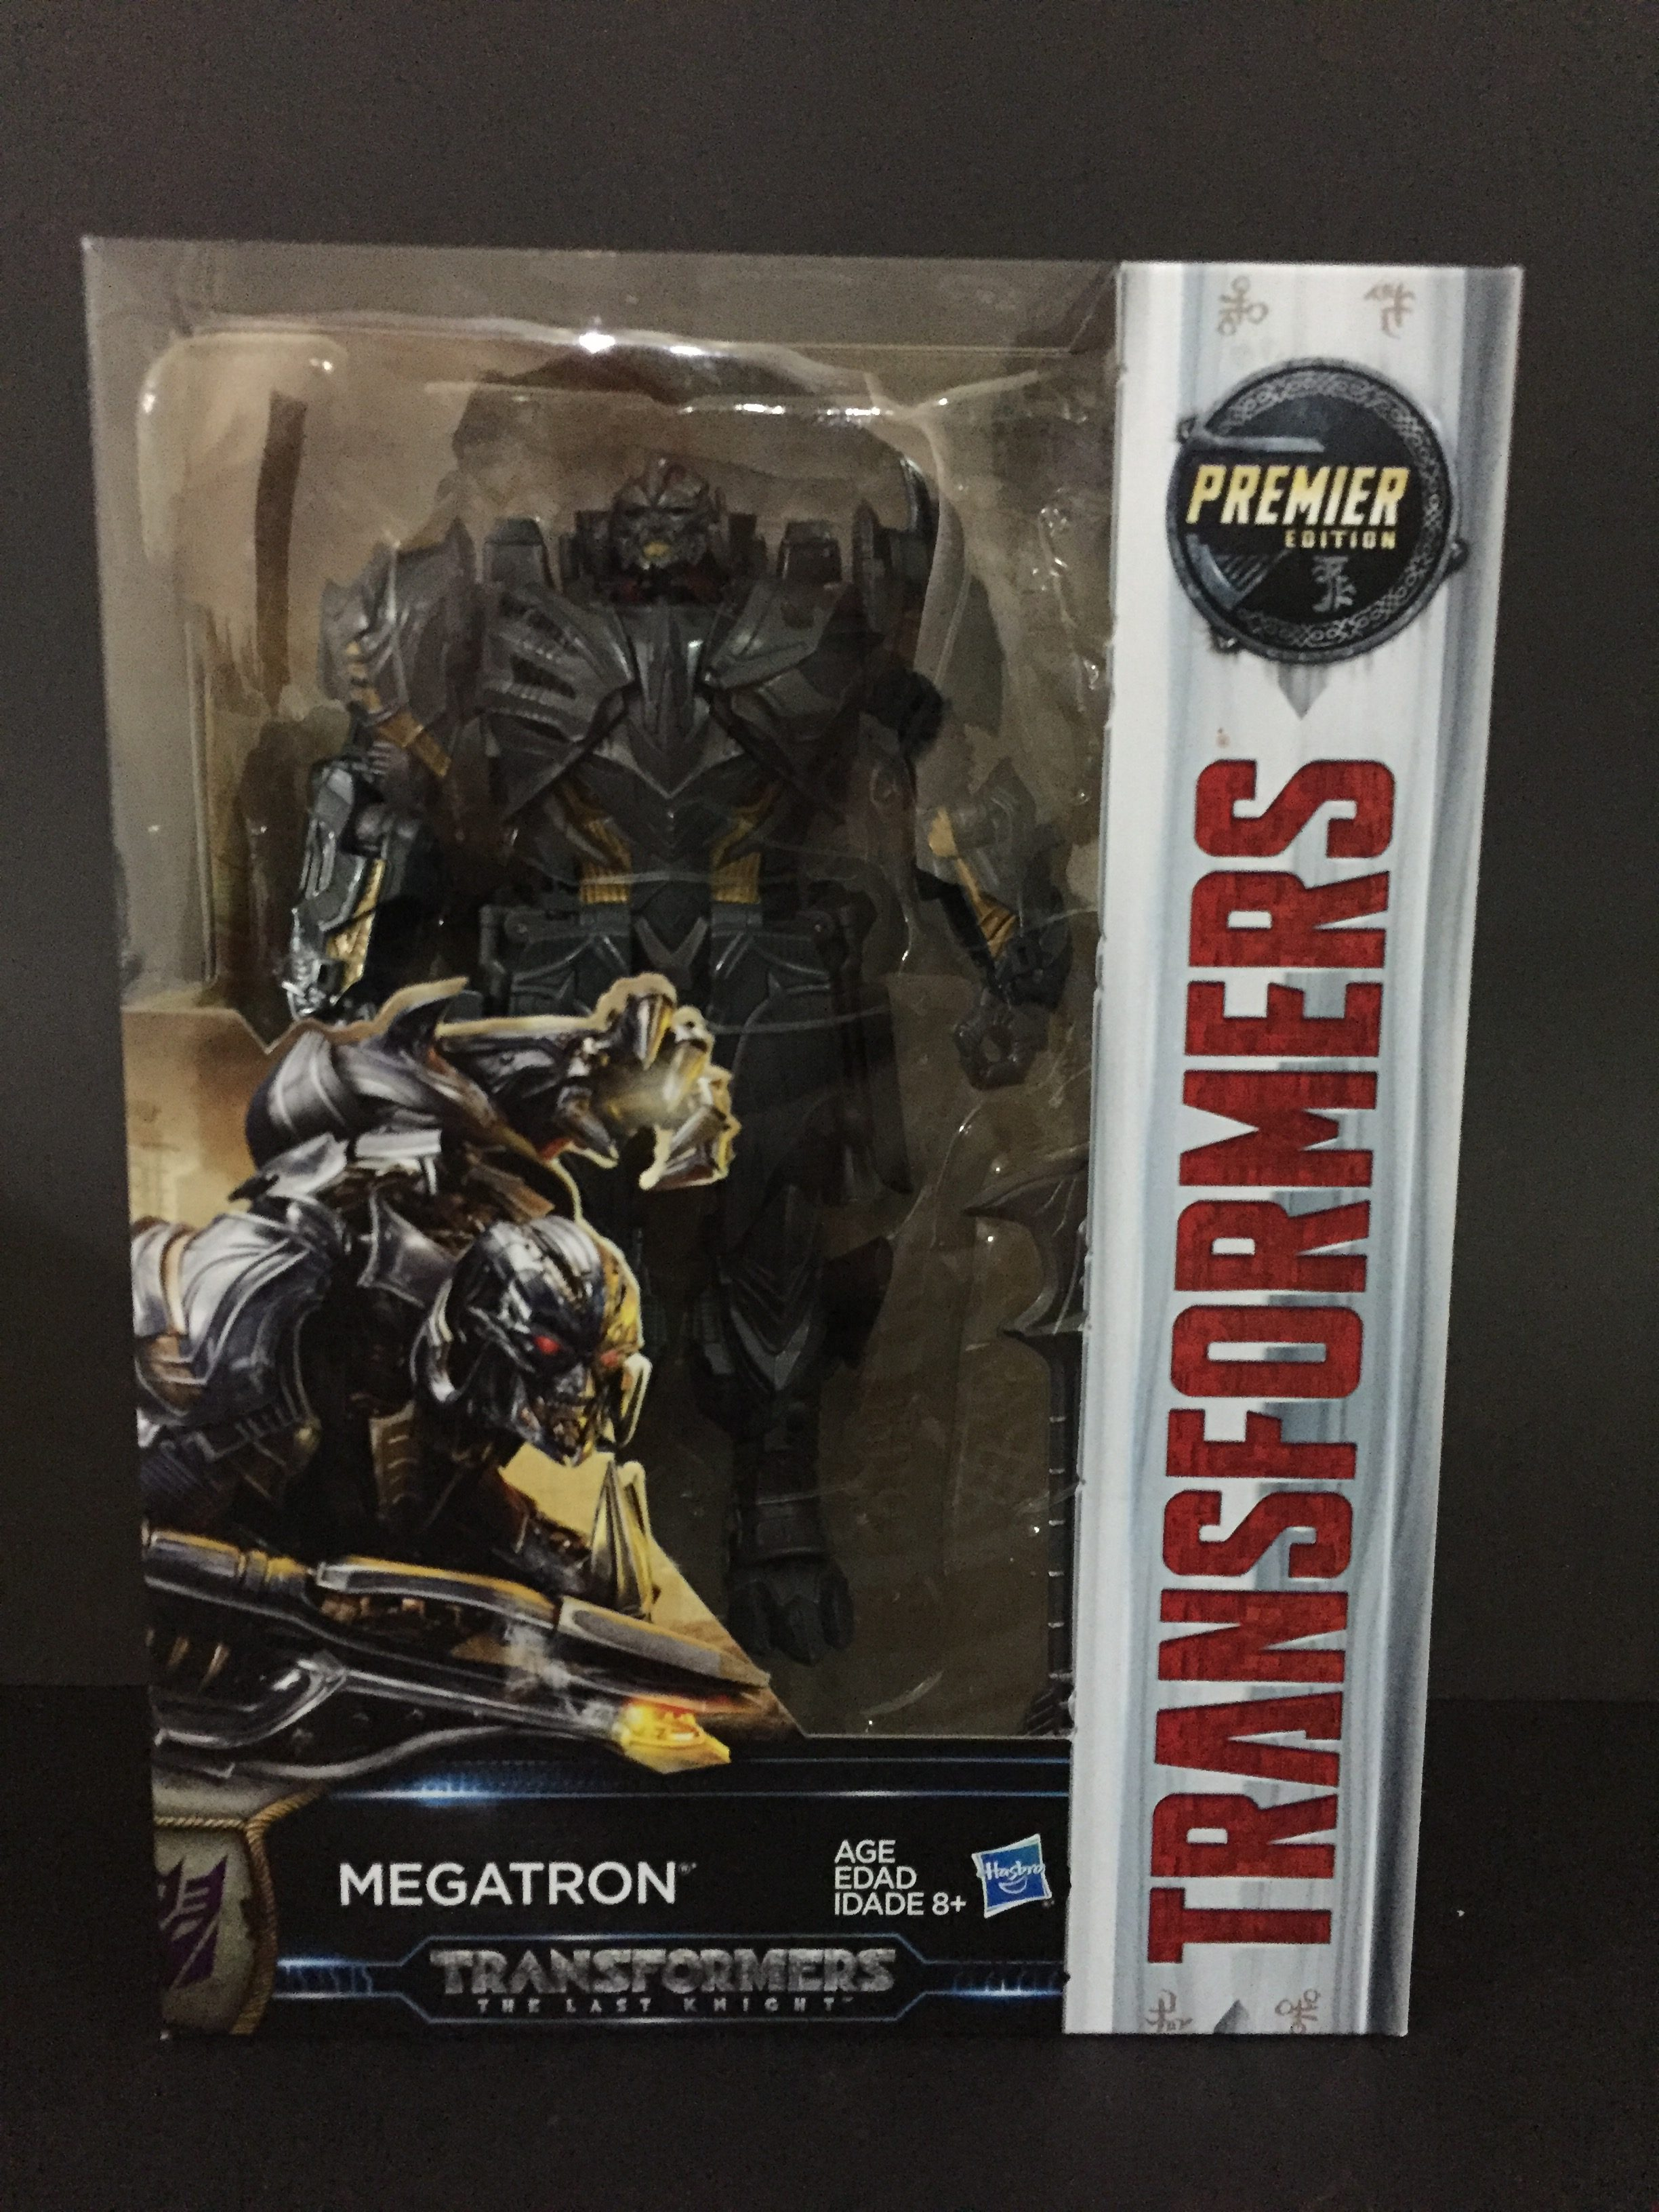 Megatron (Voyager, Transformers: The Last Knight)